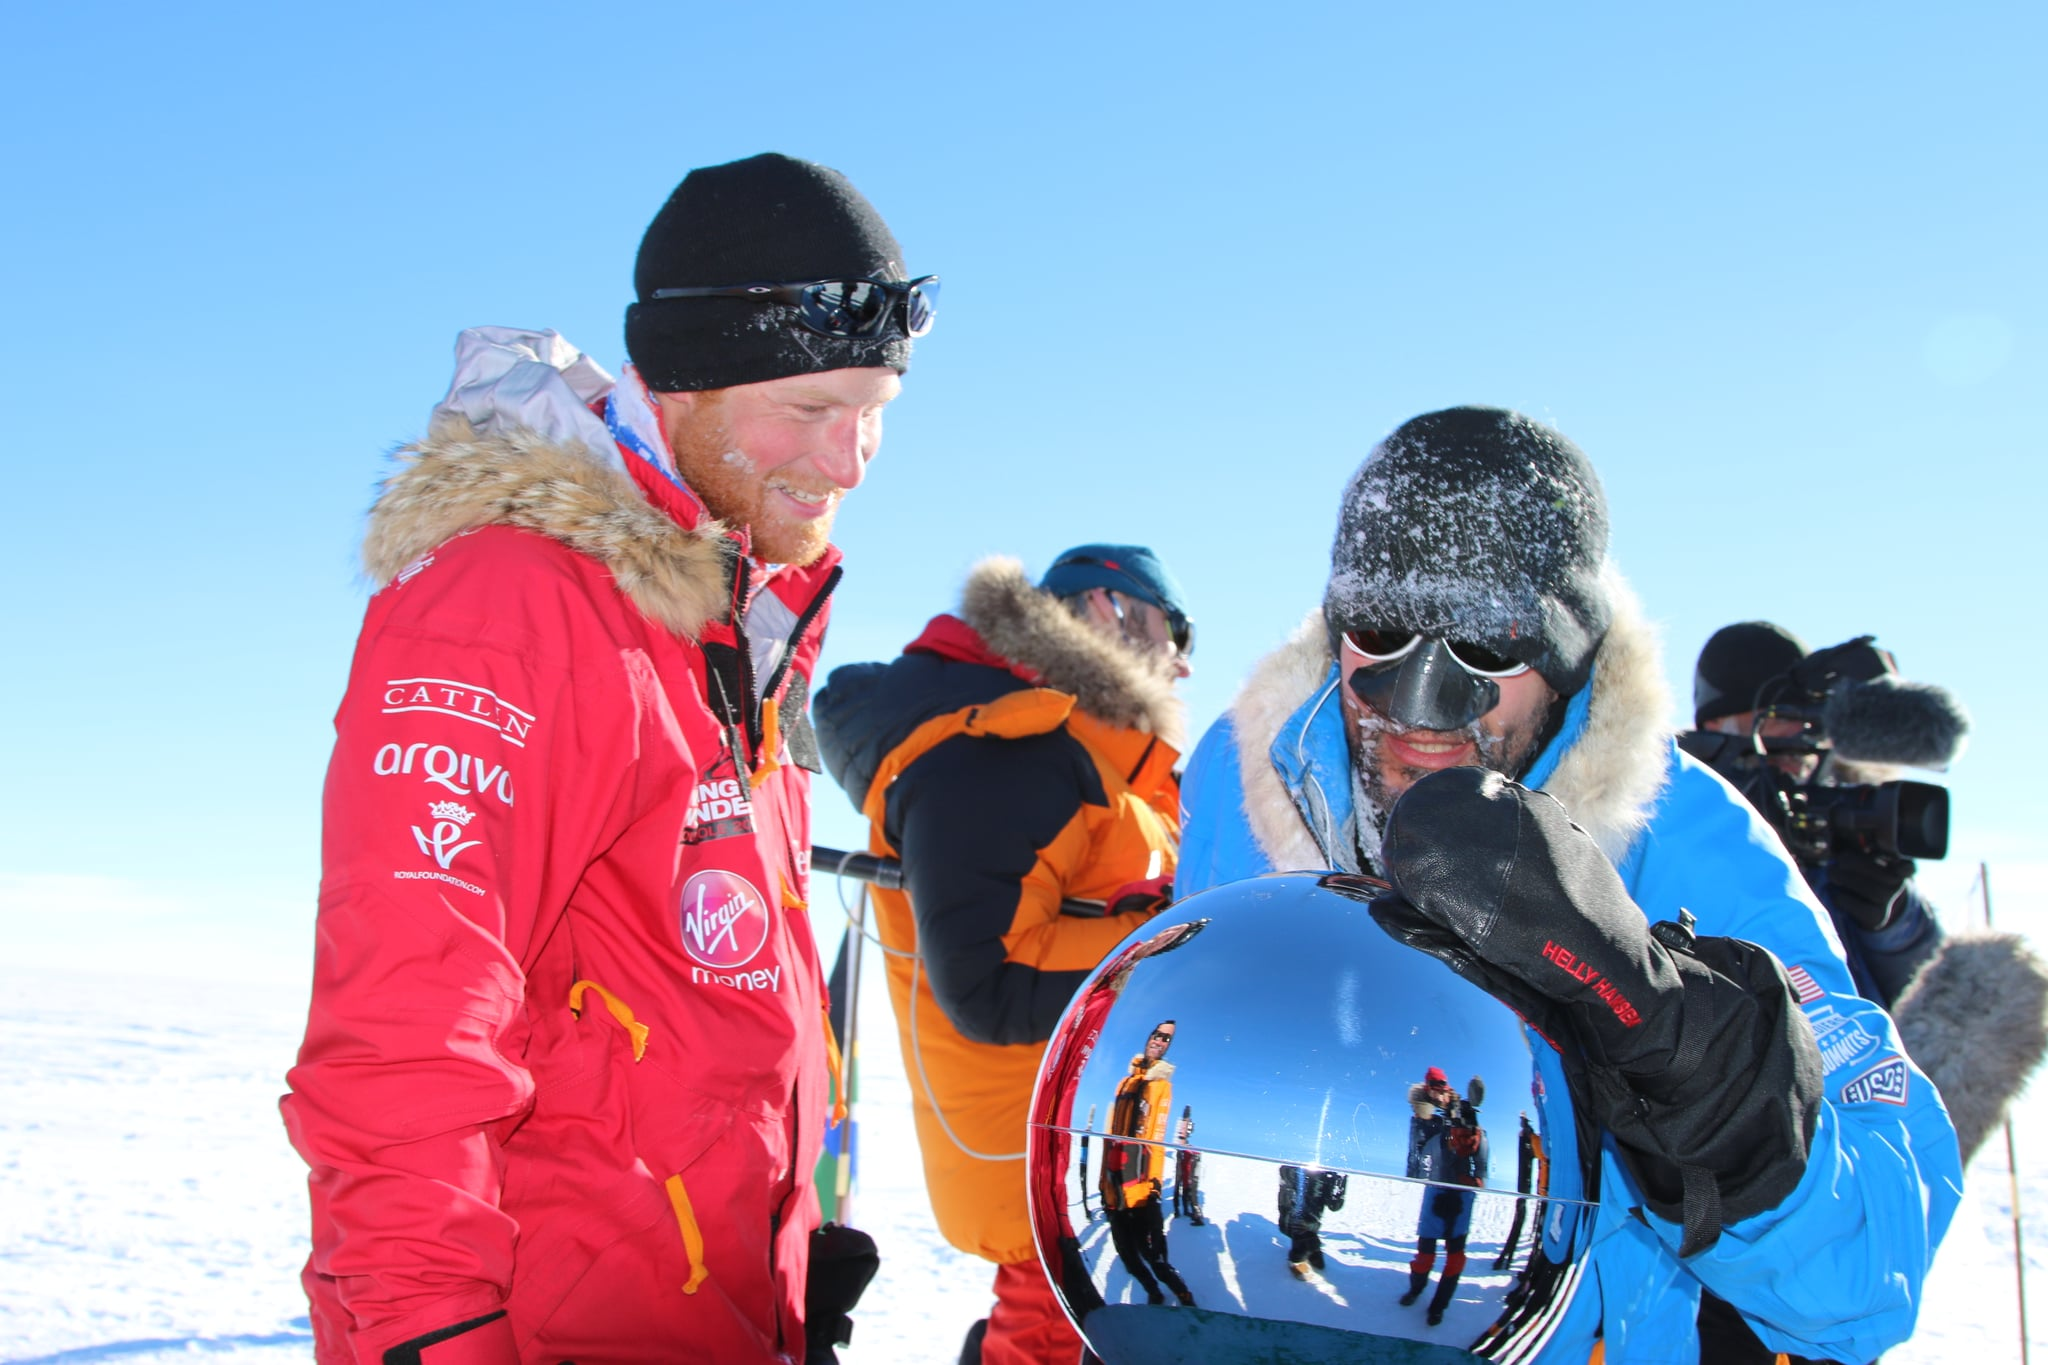 Harry grew a beard when he trekked to the South Pole with Walking With the Wounded in December 2013.